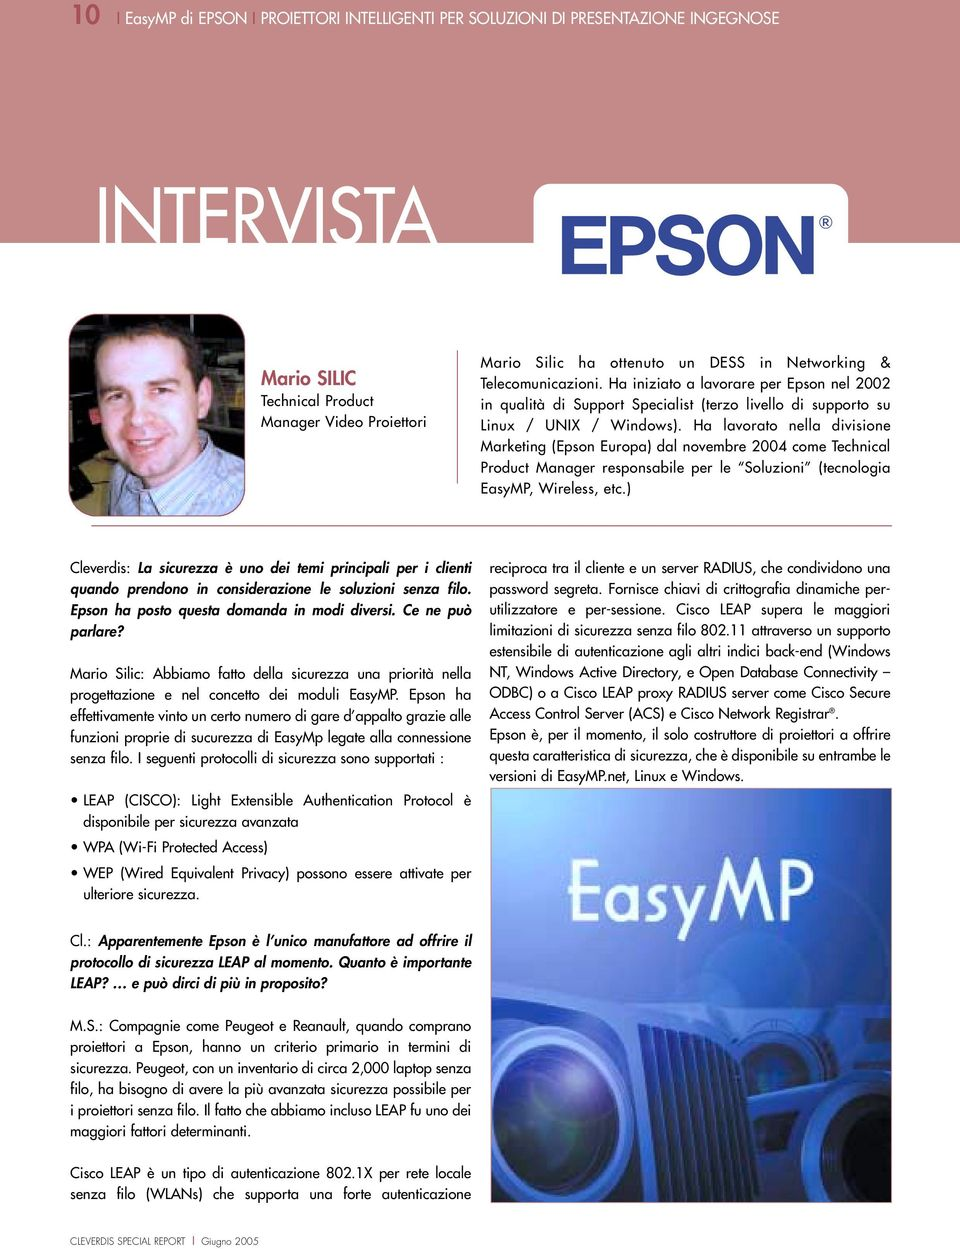 Ha lavorato nella divisione Marketing (Epson Europa) dal novembre 2004 come Technical Product Manager responsabile per le Soluzioni (tecnologia EasyMP, Wireless, etc.